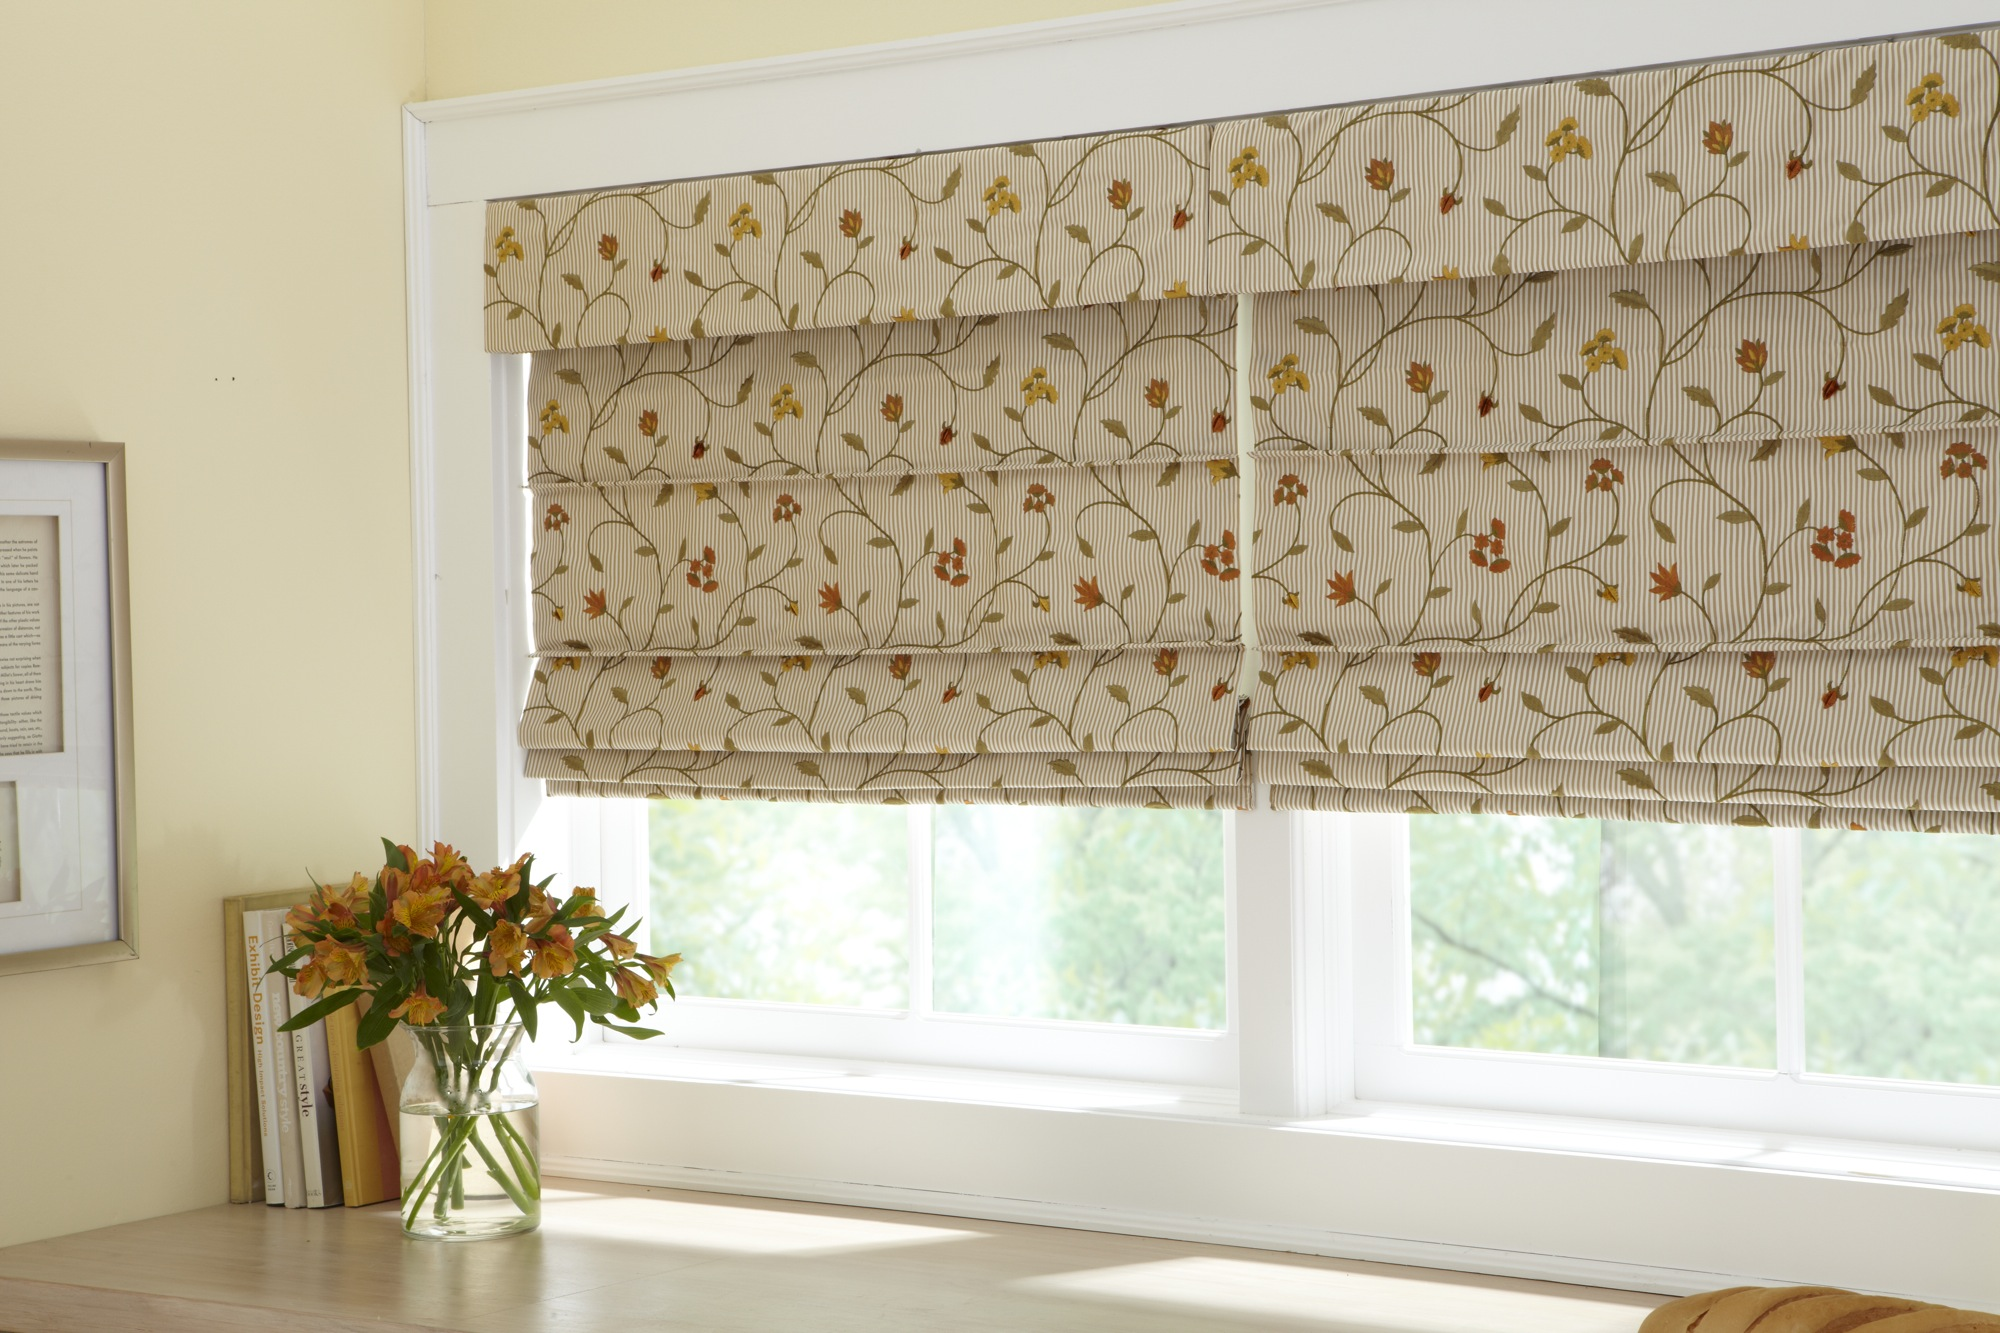 Bay way blinds and draperies a leader in window coverings for Fabric shades for kitchen windows